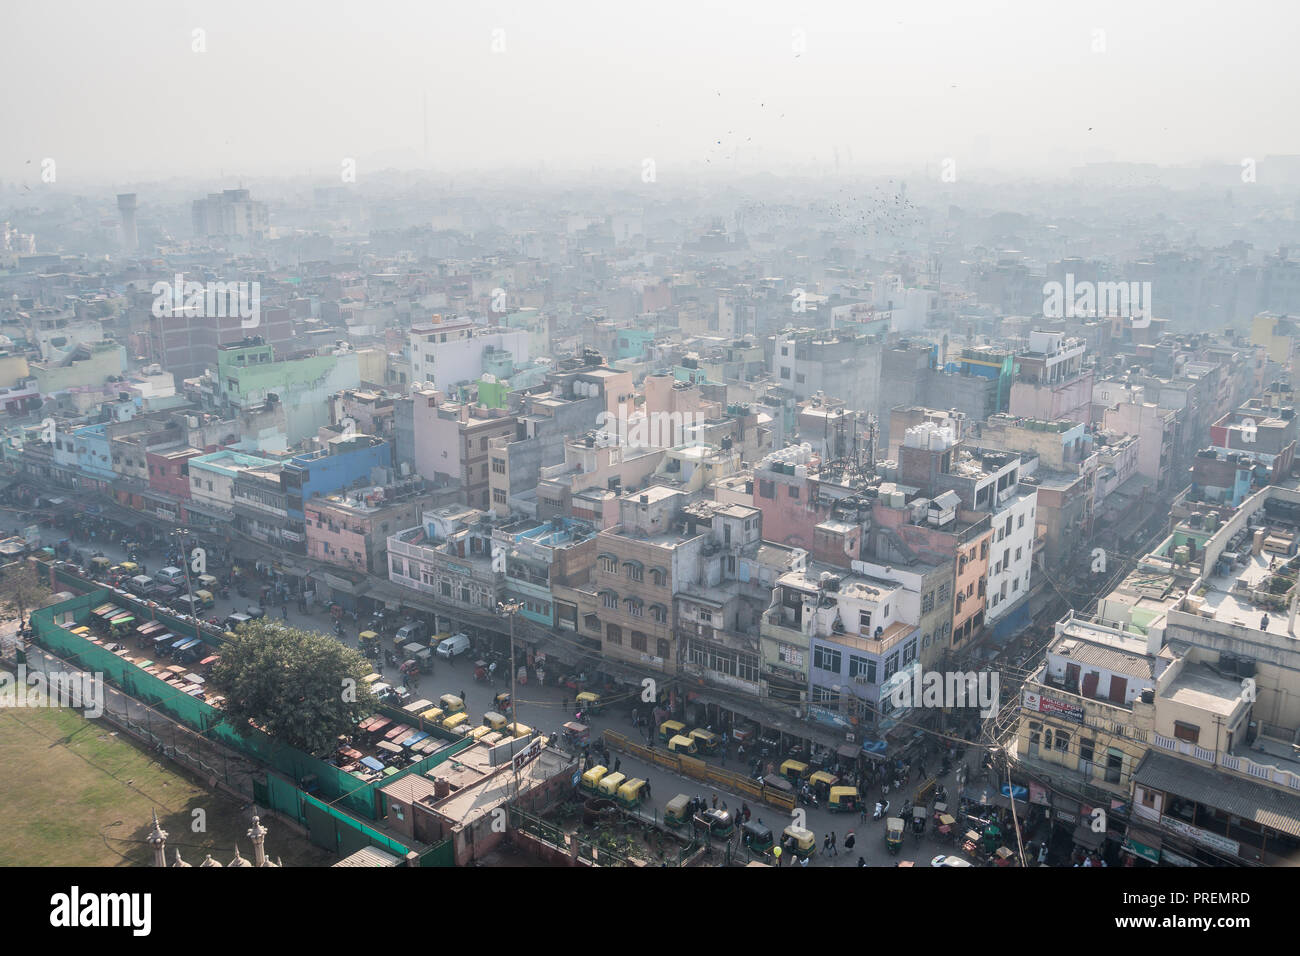 The streets of old Delhi. The view from the top. Dense construction of urban agglomeration in the overpopulated city. - Stock Image